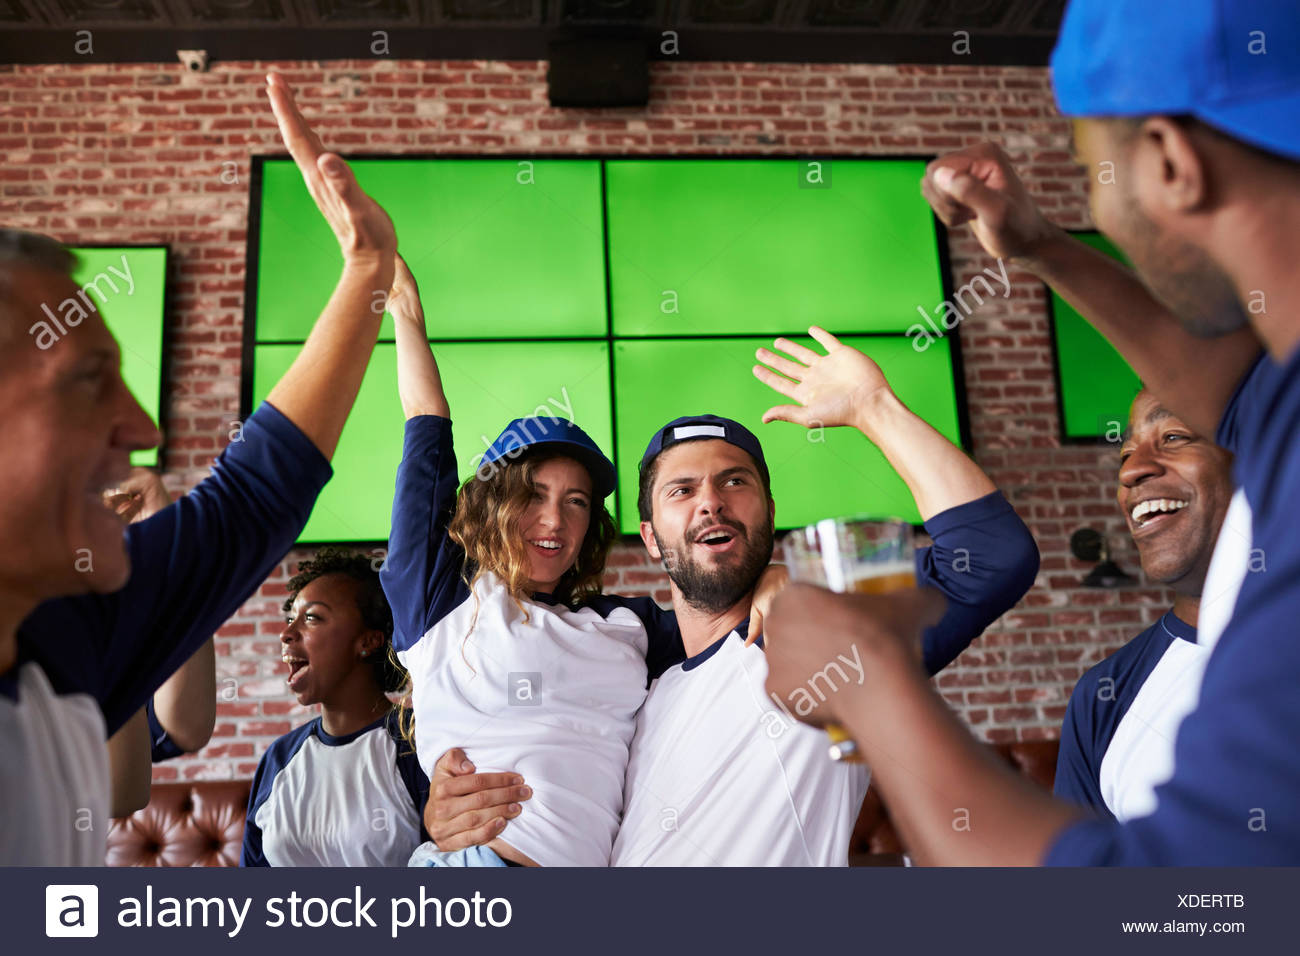 Friends Watching Game In Sports Bar On Screens Celebrating - Stock Image